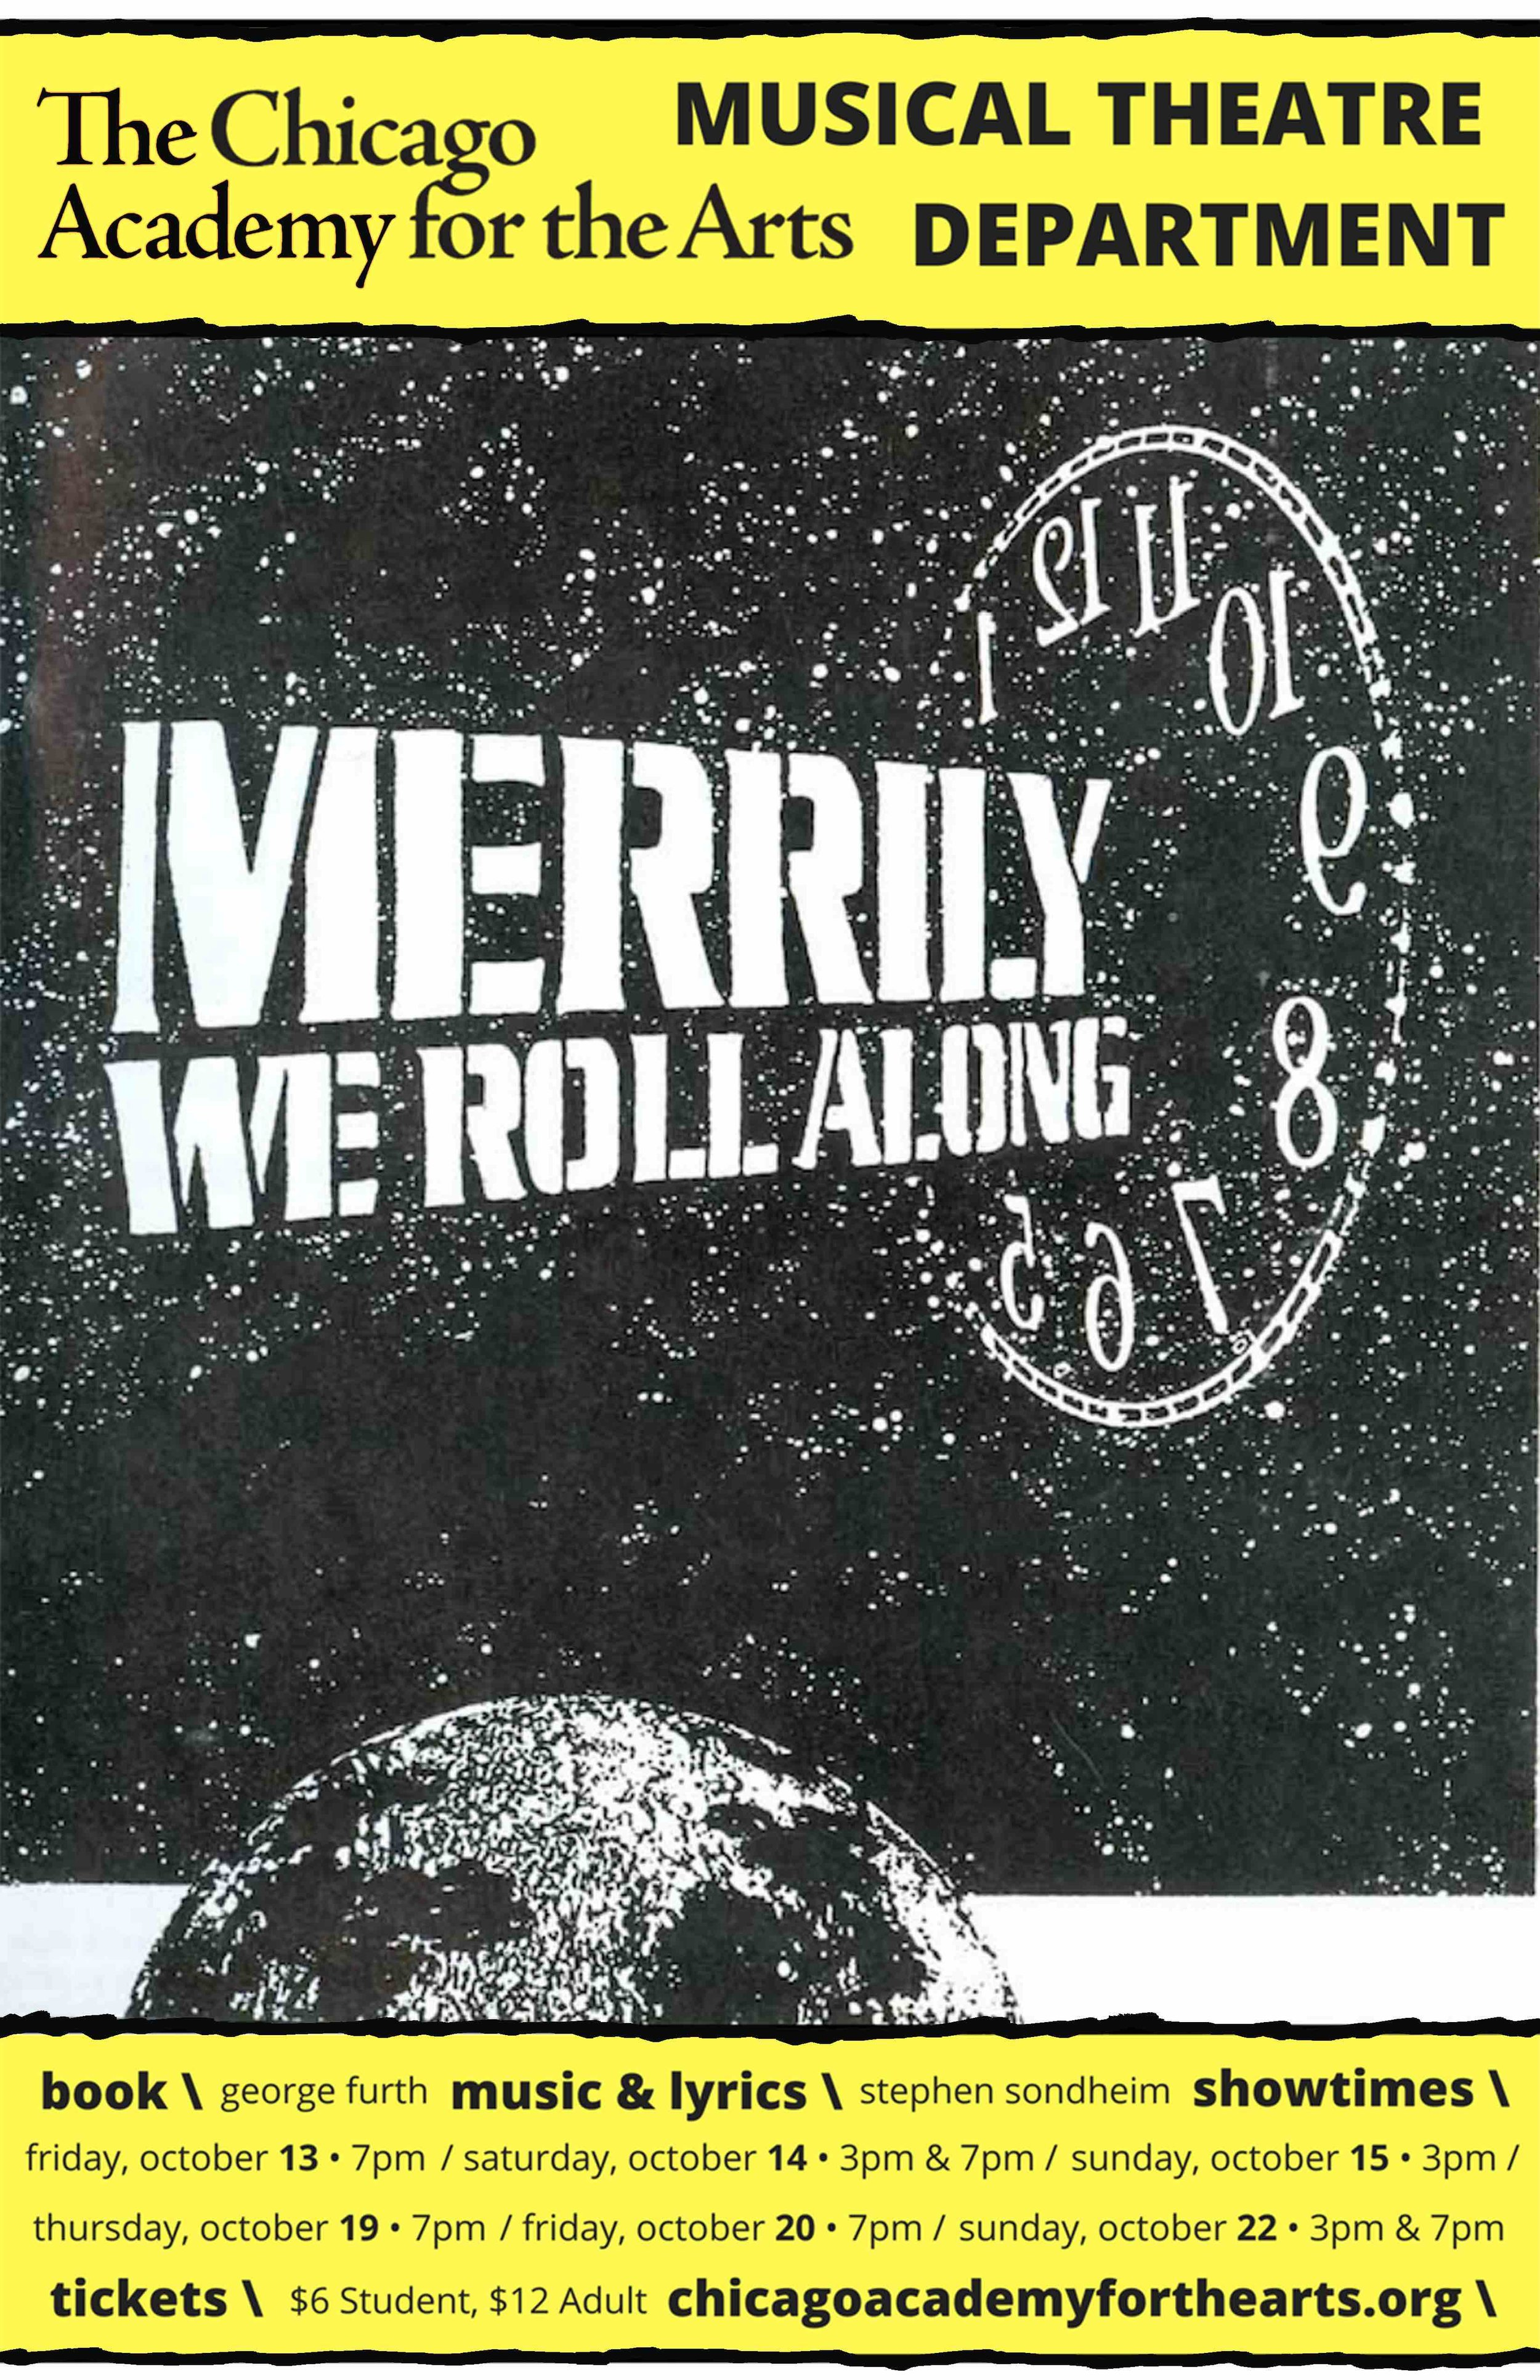 merrily we roll along poster.jpg